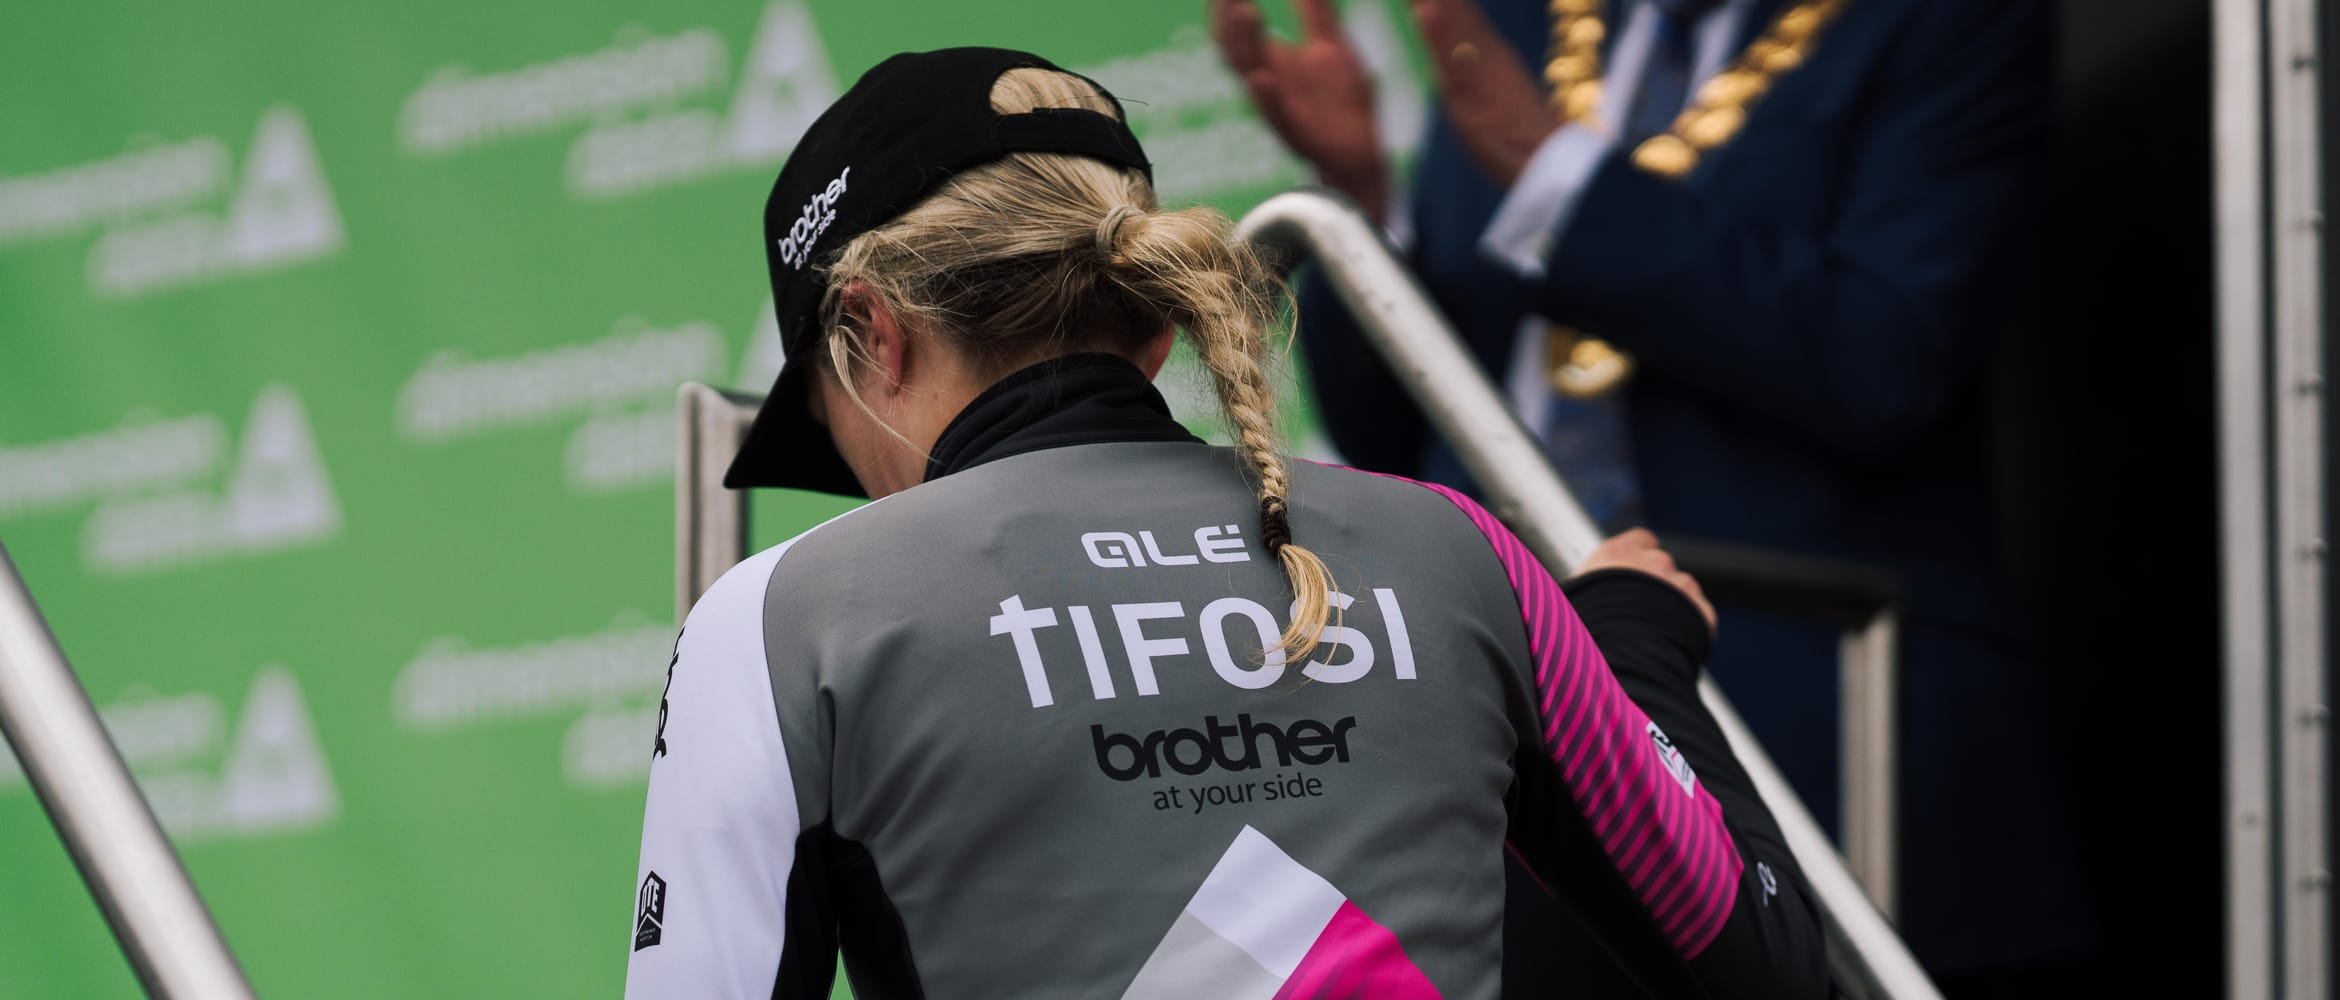 The back of cyclist Leah Dixon while she's climbing steps up to a podium